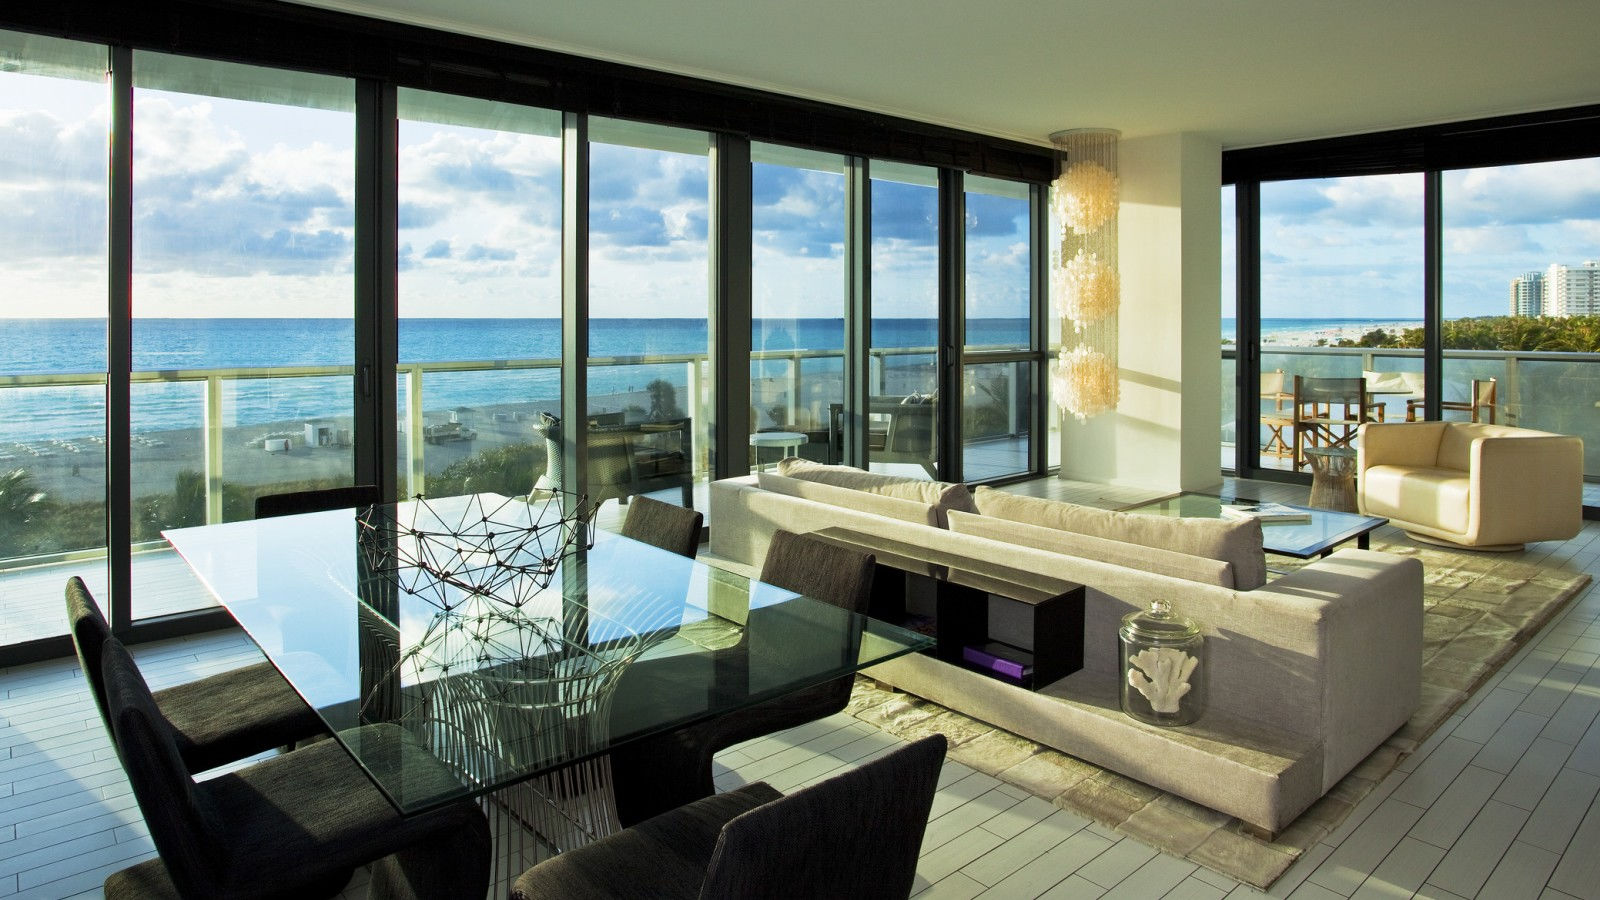 WOW Oceanfront Suite with balcony